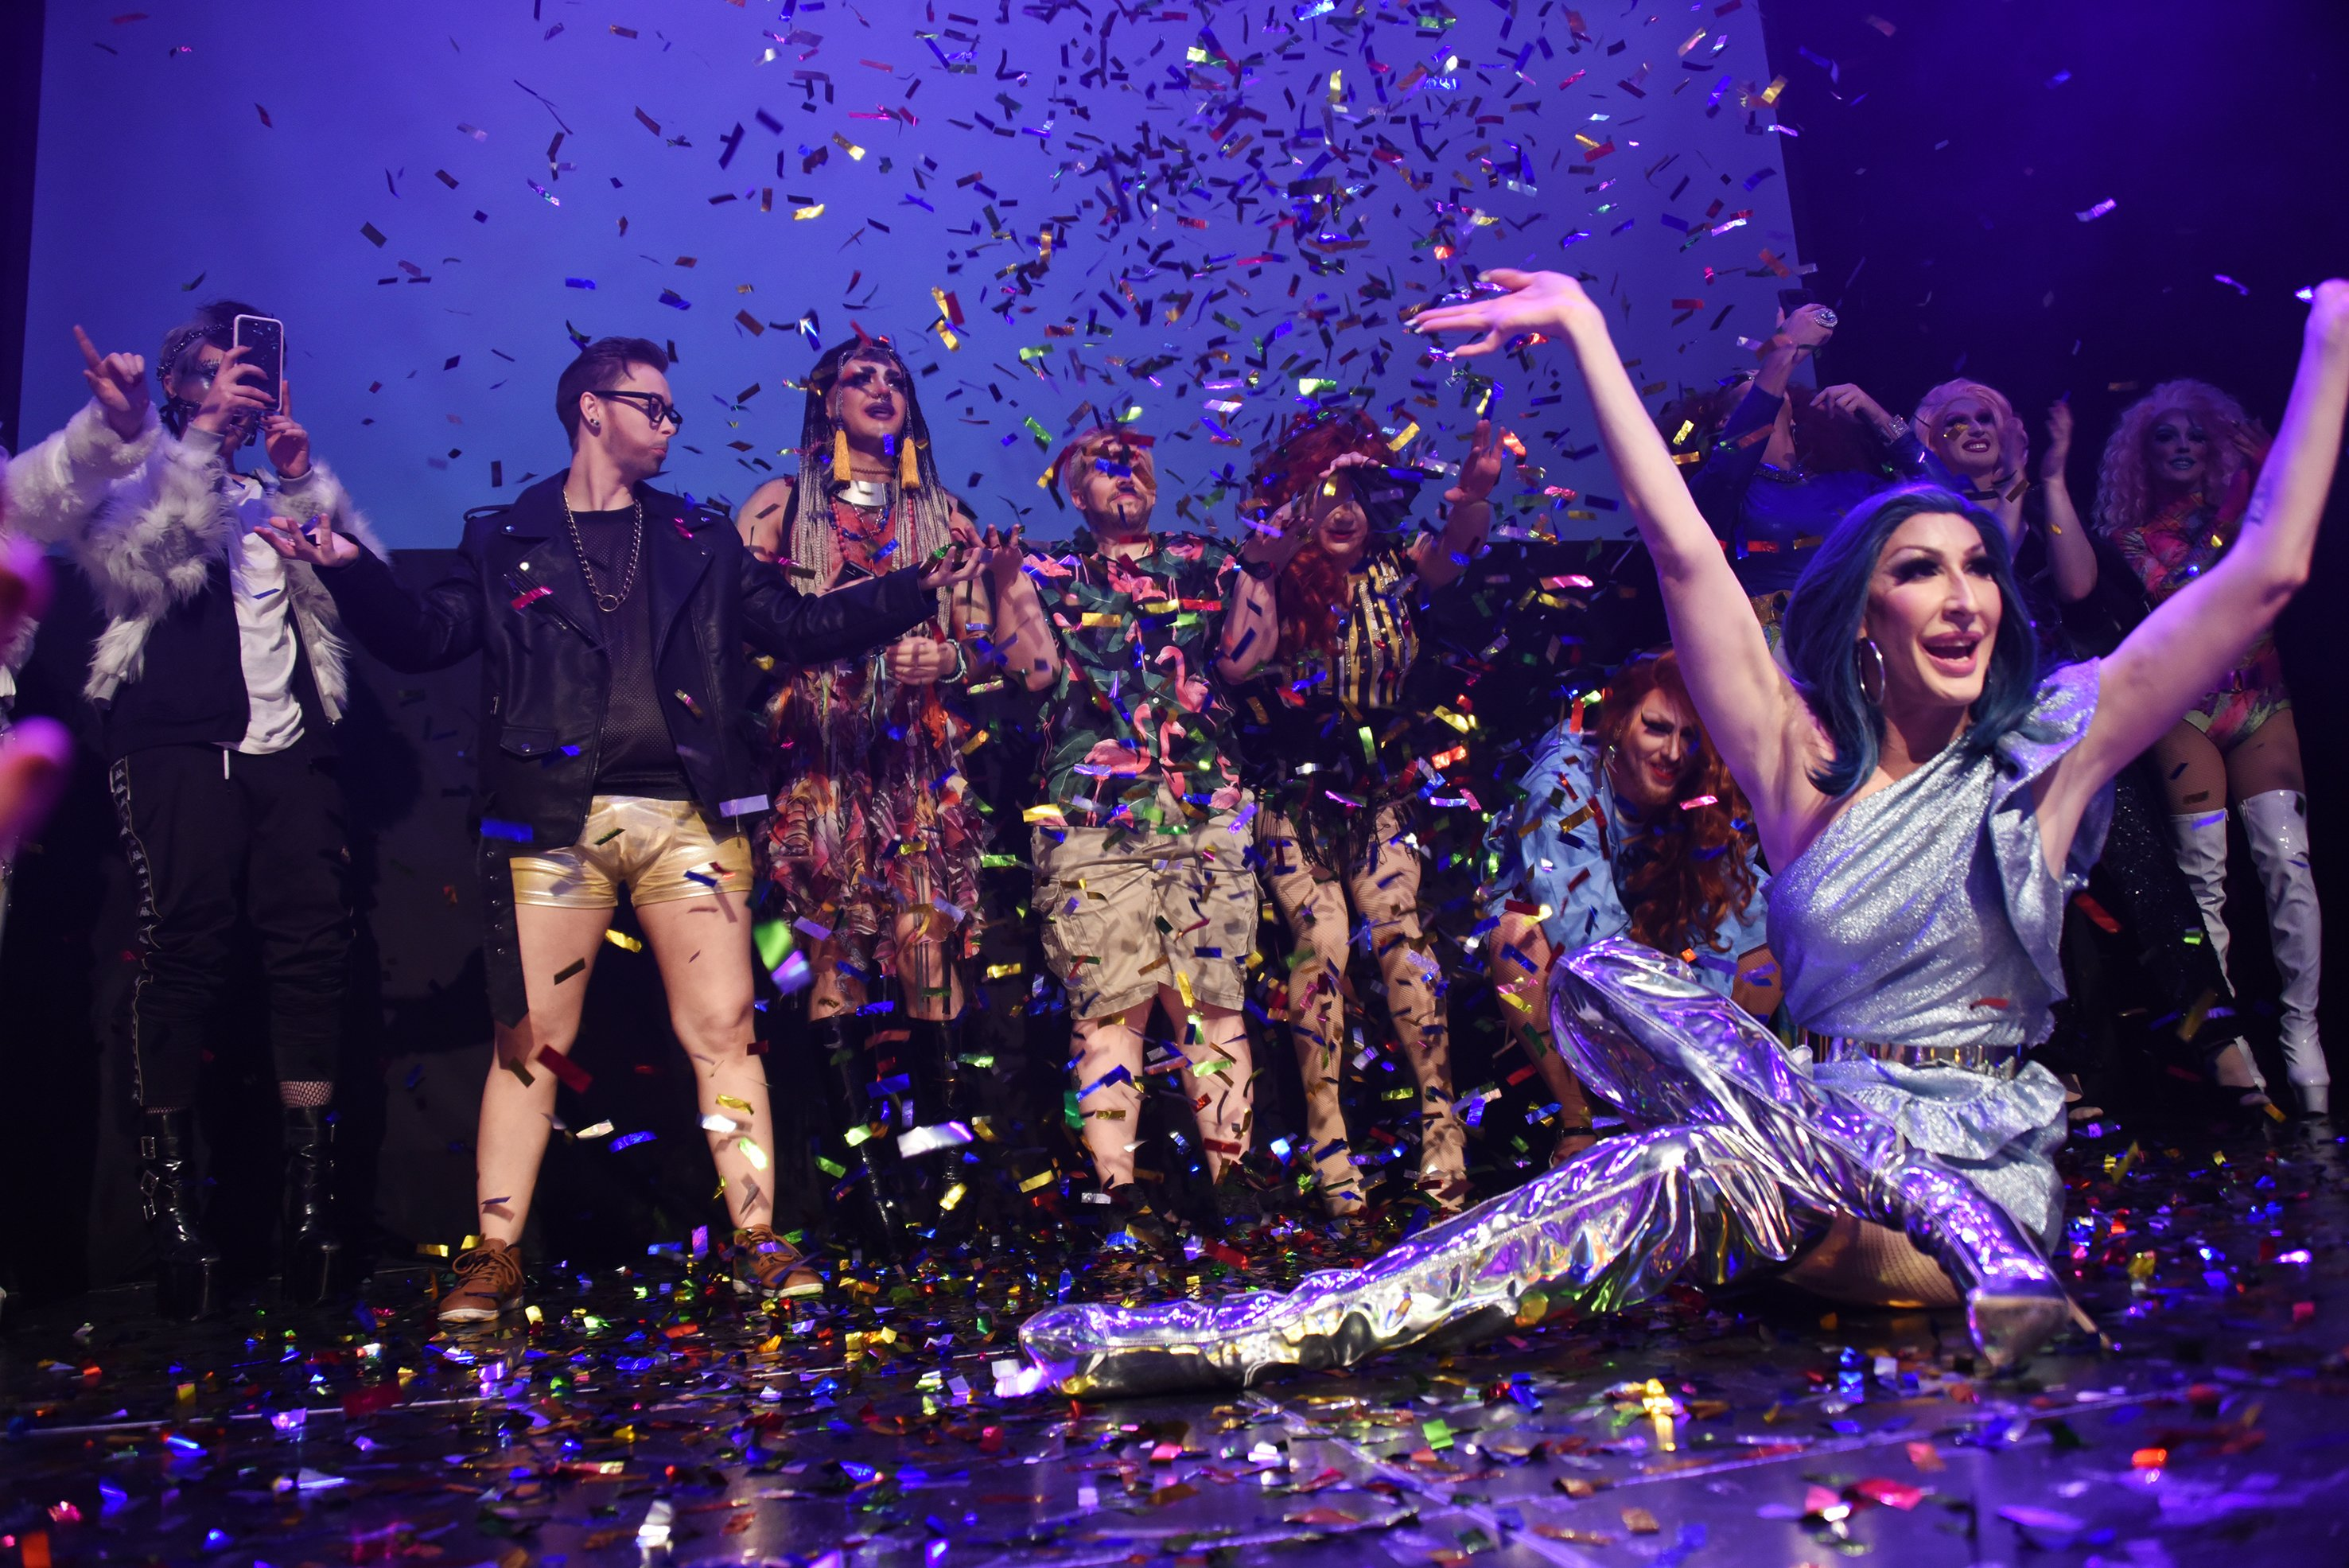 PHOTOS: Detox, Heklina, Drag-súgur & More Bringing You PRIDE